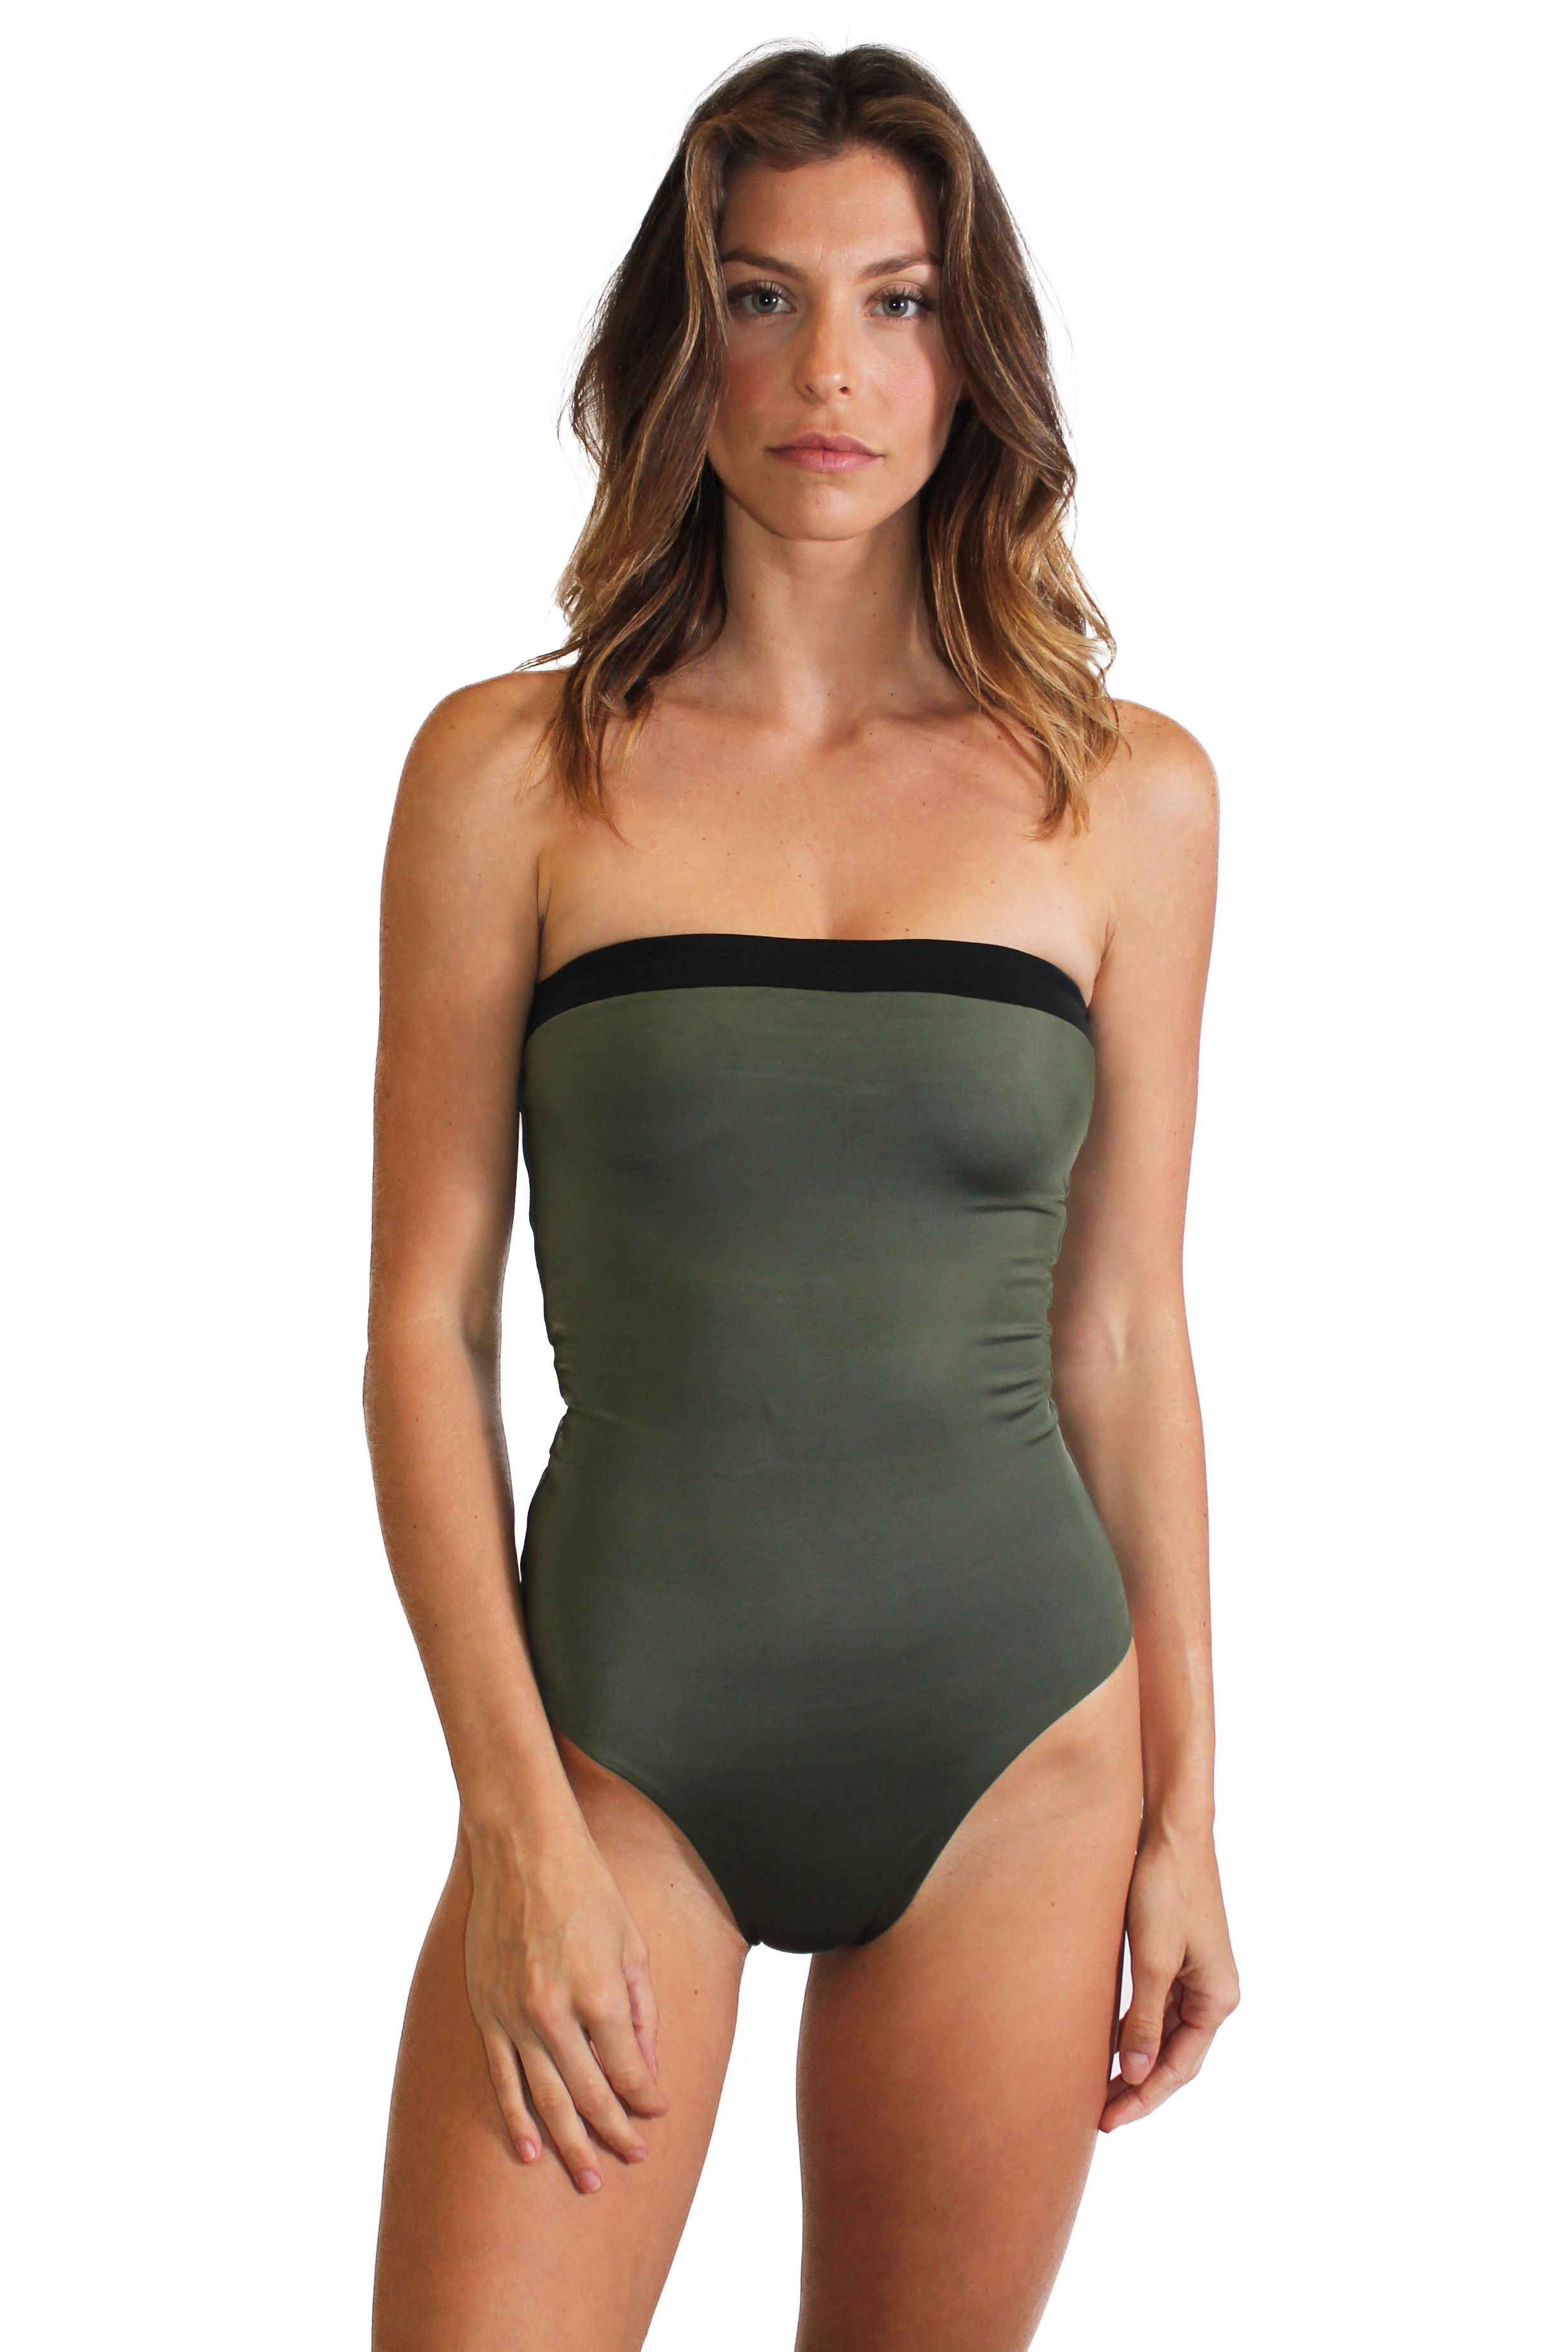 198be4c2ae869 Beautiful seamless one-piece swimsuit in army green color with black color  blocking. Black lining makes this swimsuit reversible.